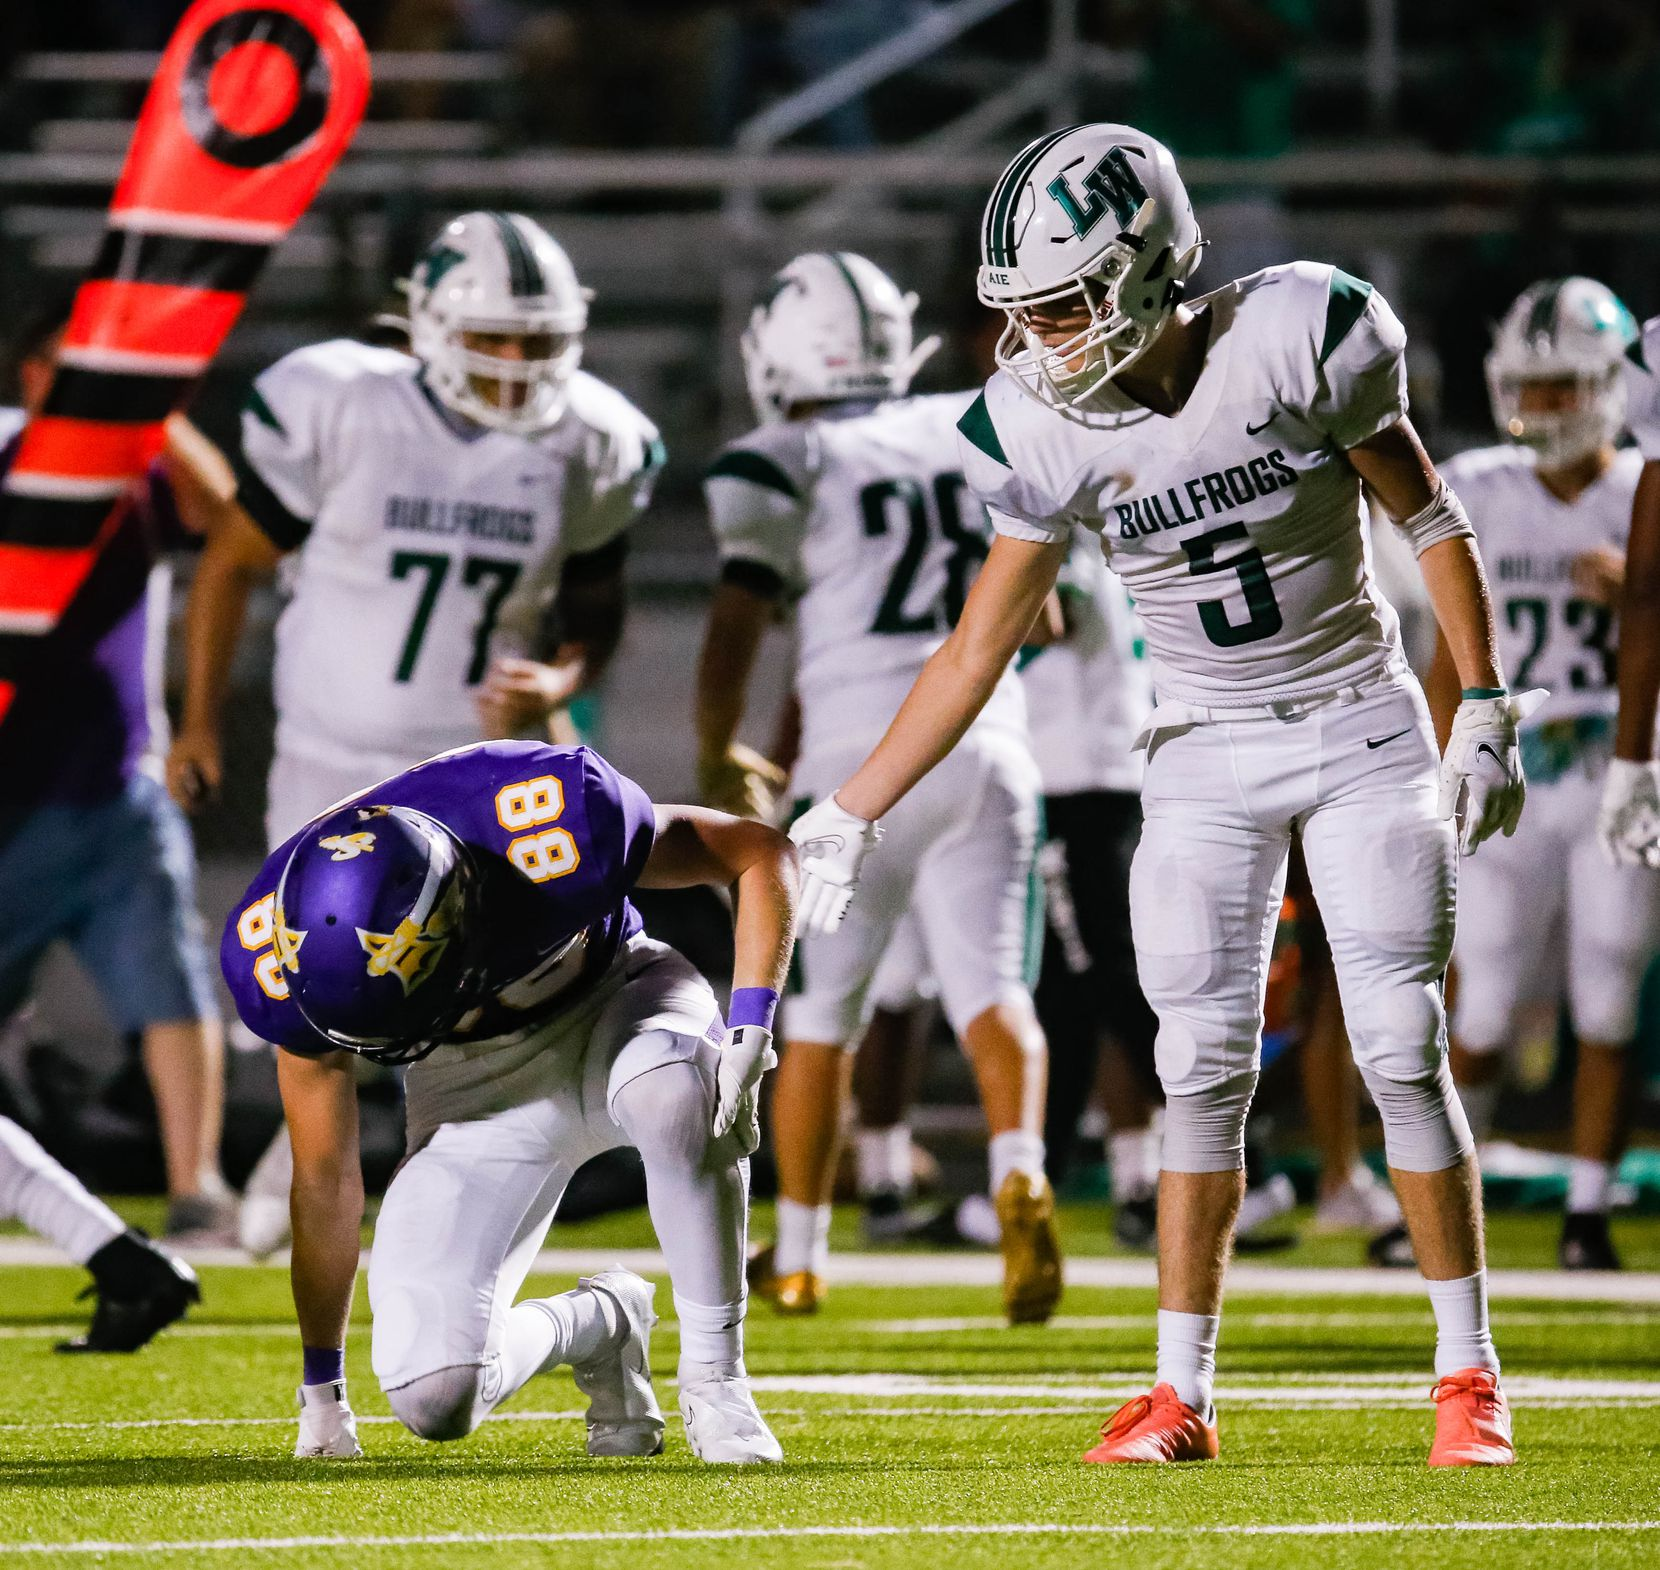 Lake Worth High School's Mark Fulkerson (5) offers Sanger High School's Dewey Terreault (88) a hand after he missed a pass during the second half of a game on Sept. 4, 2020 in Sanger. Sanger won 49-35. (Juan Figueroa/ The Dallas Morning News)